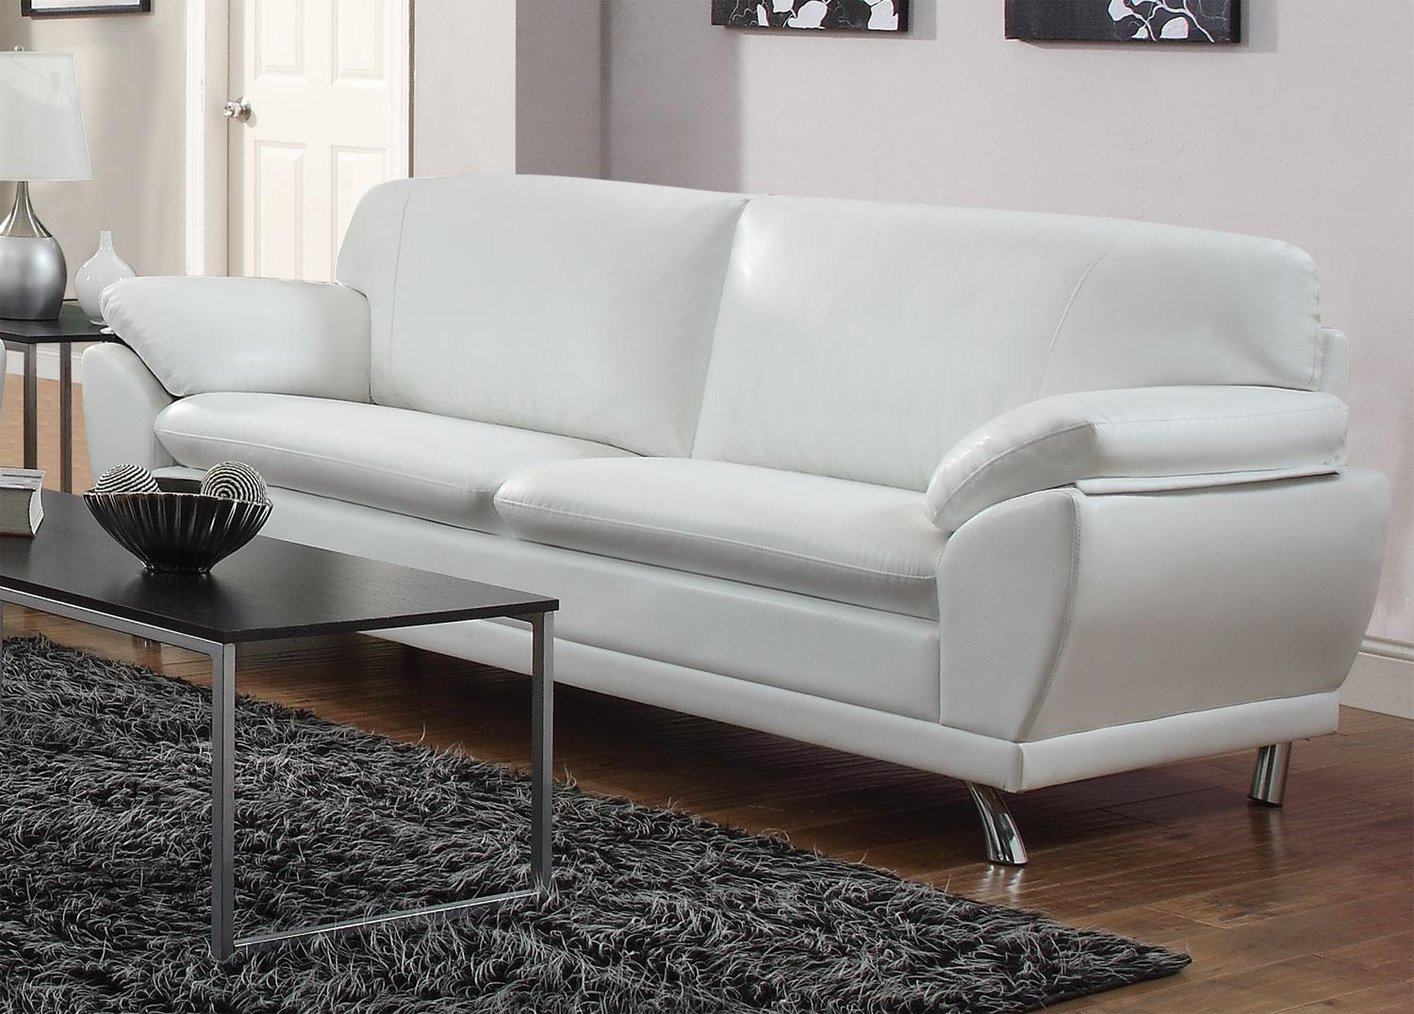 room sofas n image sectional contemporary grey furniture sofa leather of modern white